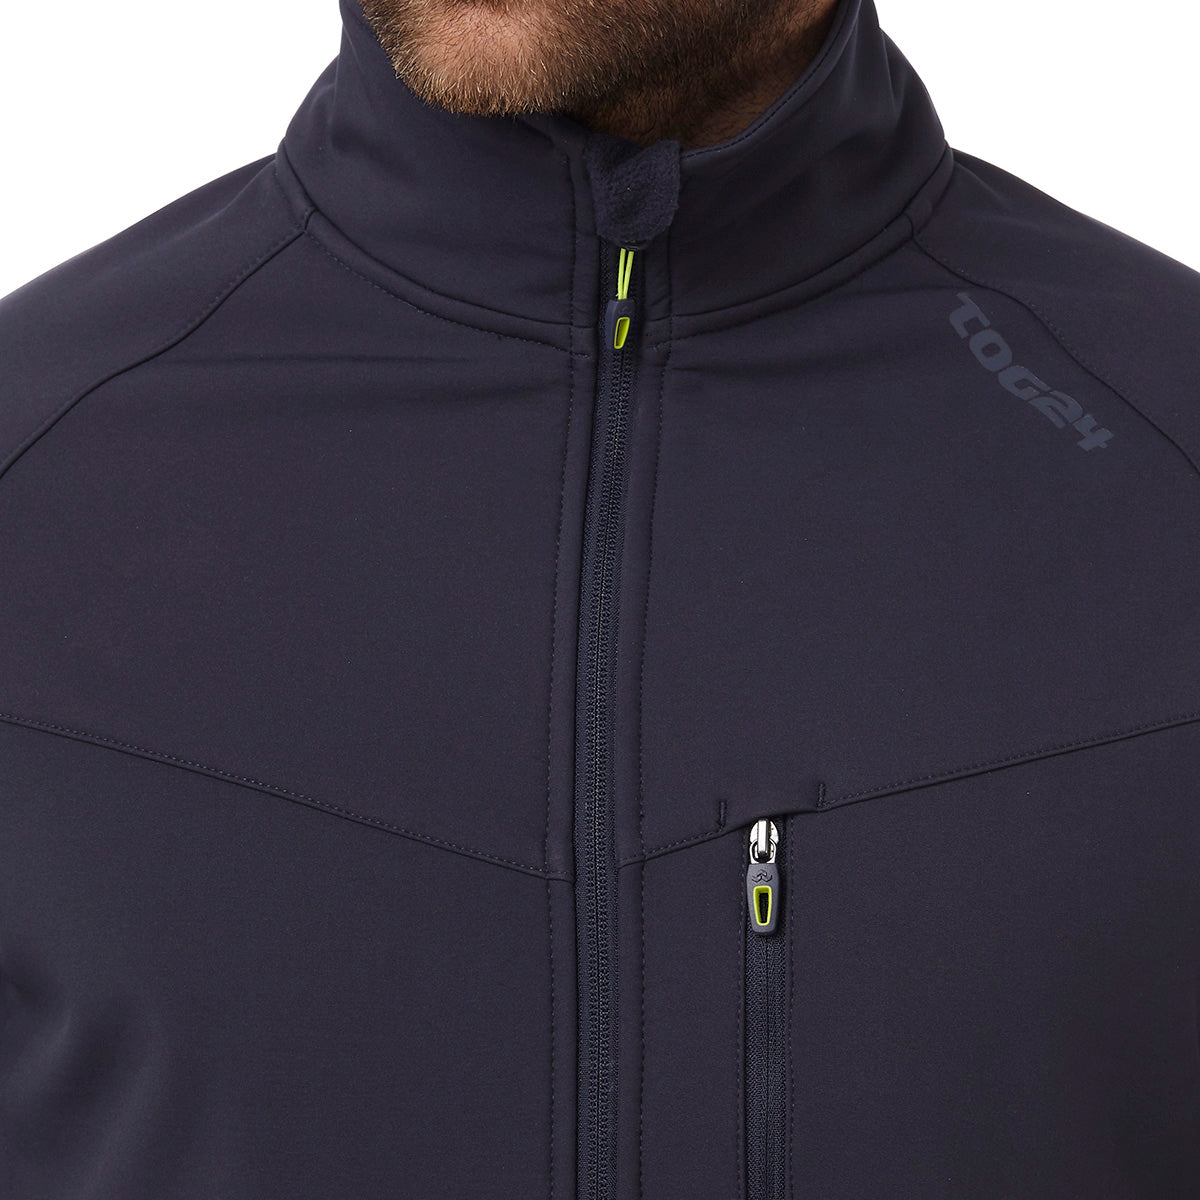 Strategy Mens TCZ Softshell Jacket - Navy image 4